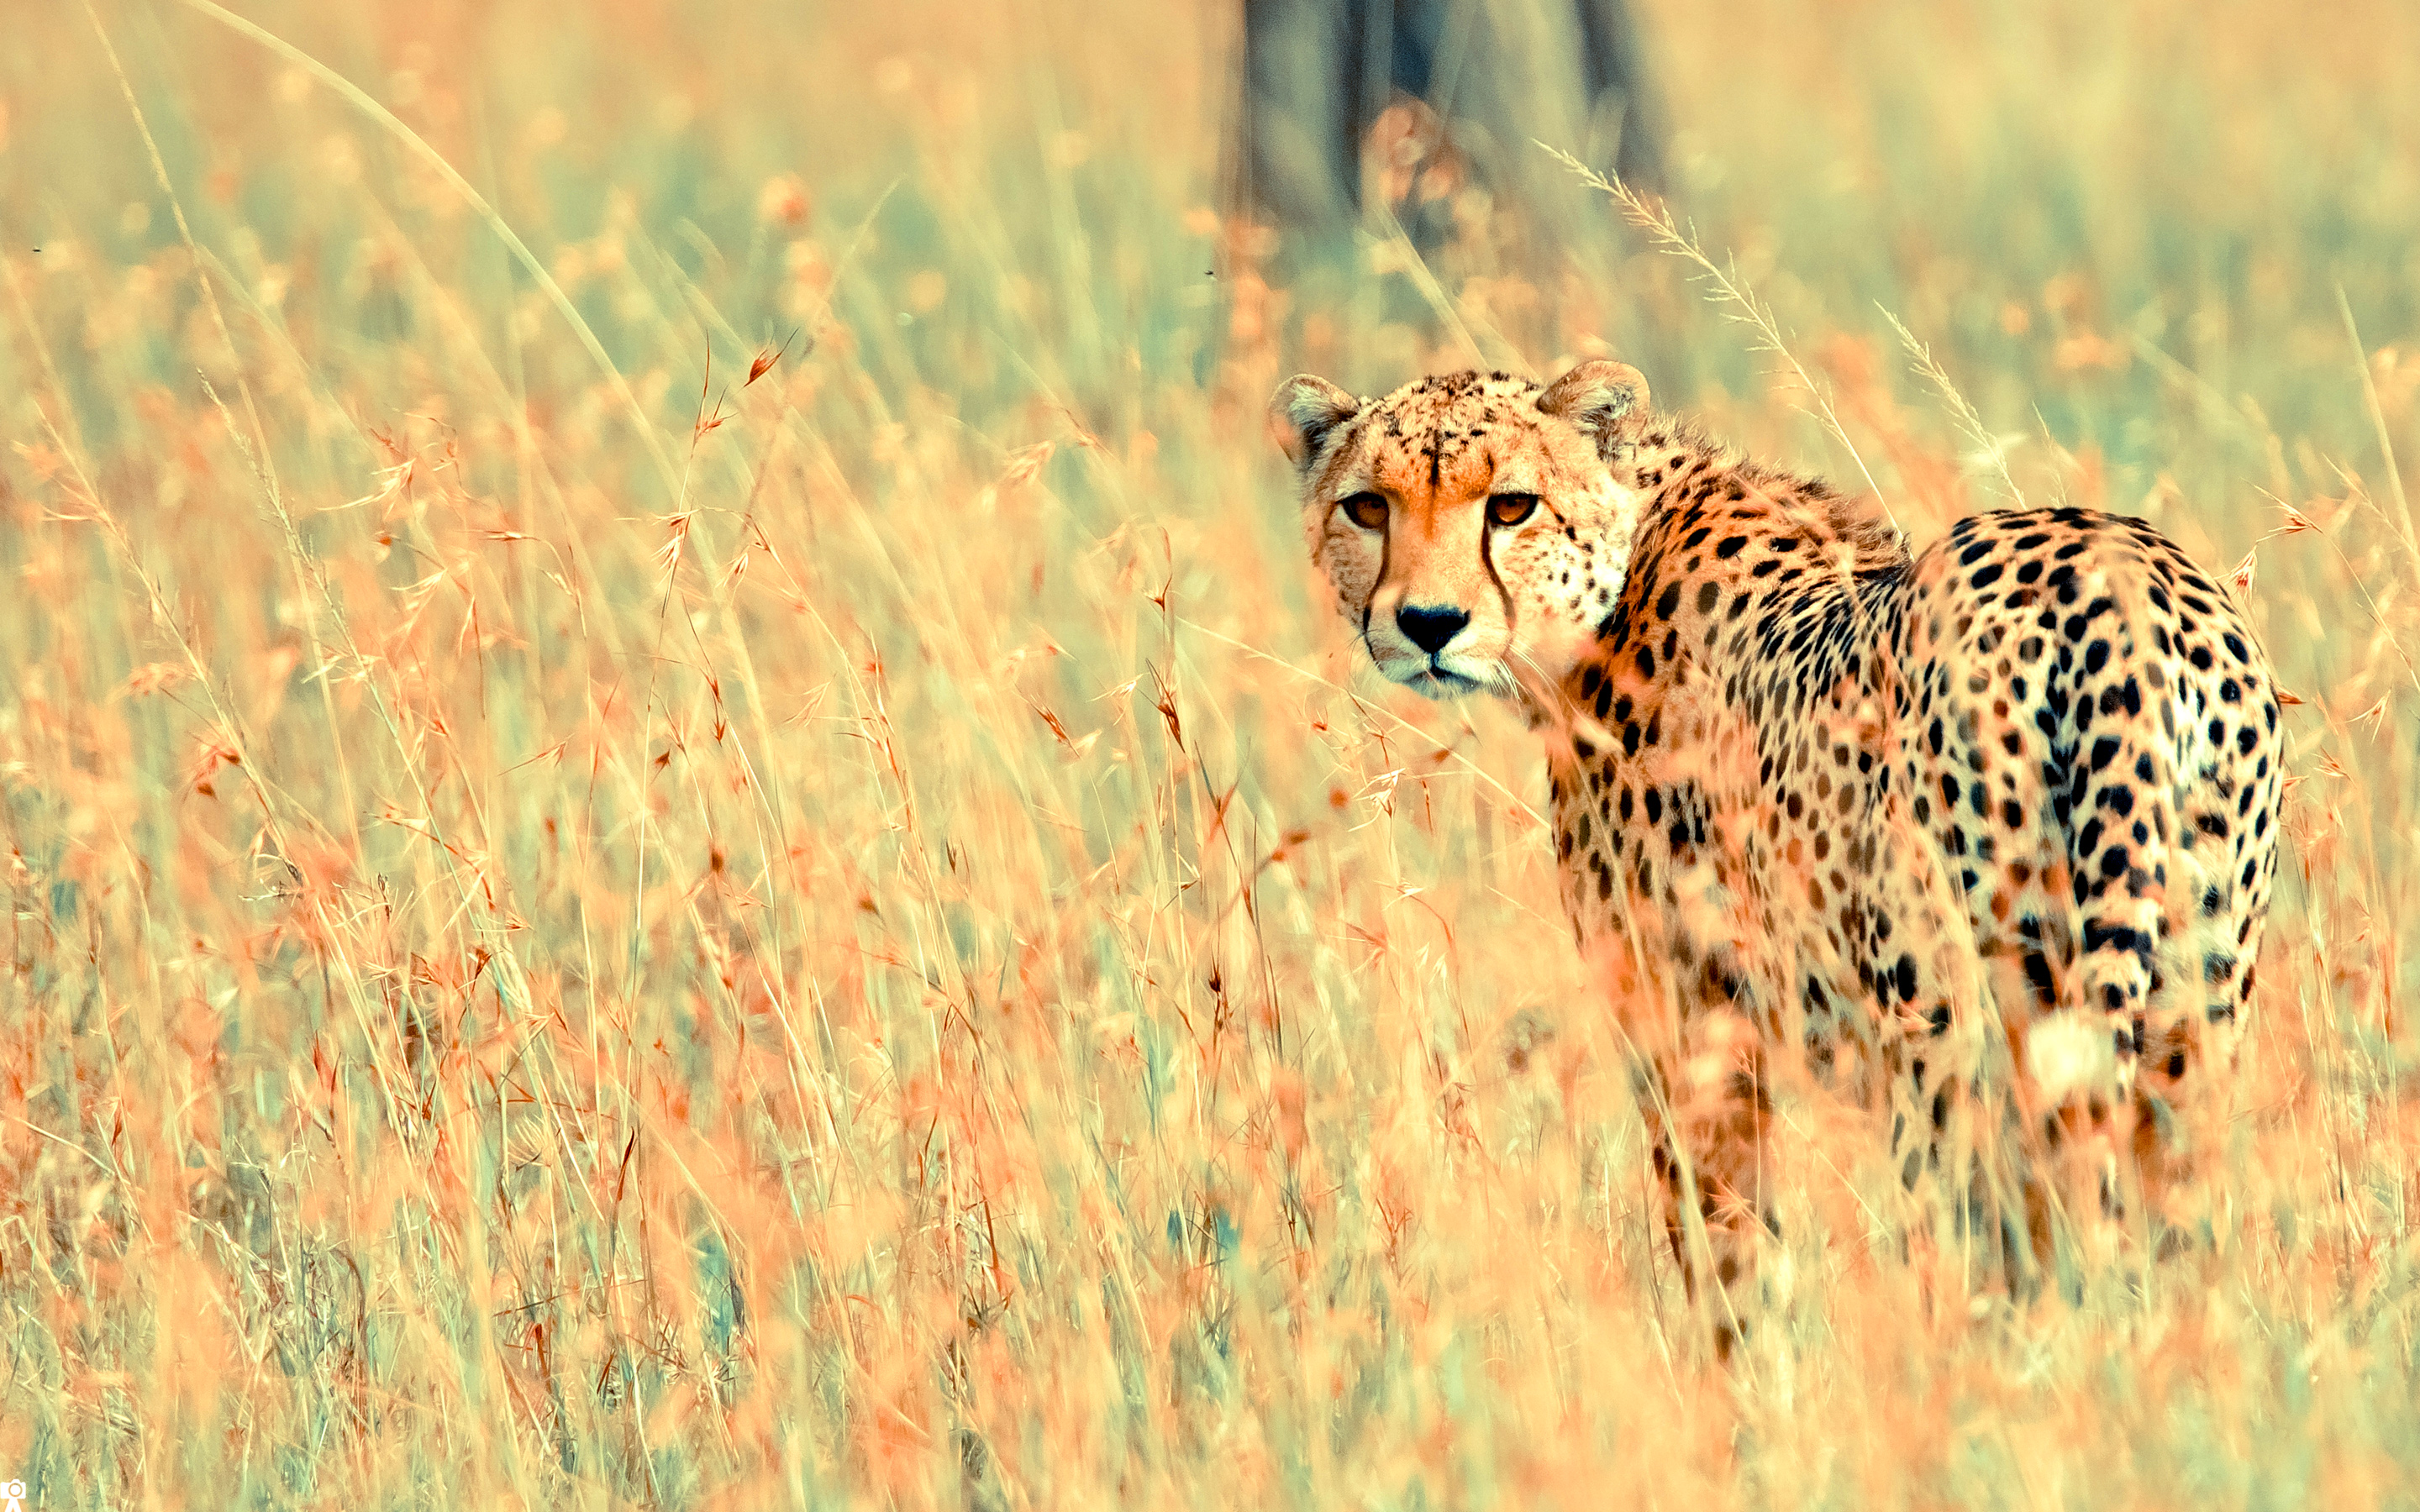 Beautiful Cheetah #4156289, 2880x1800